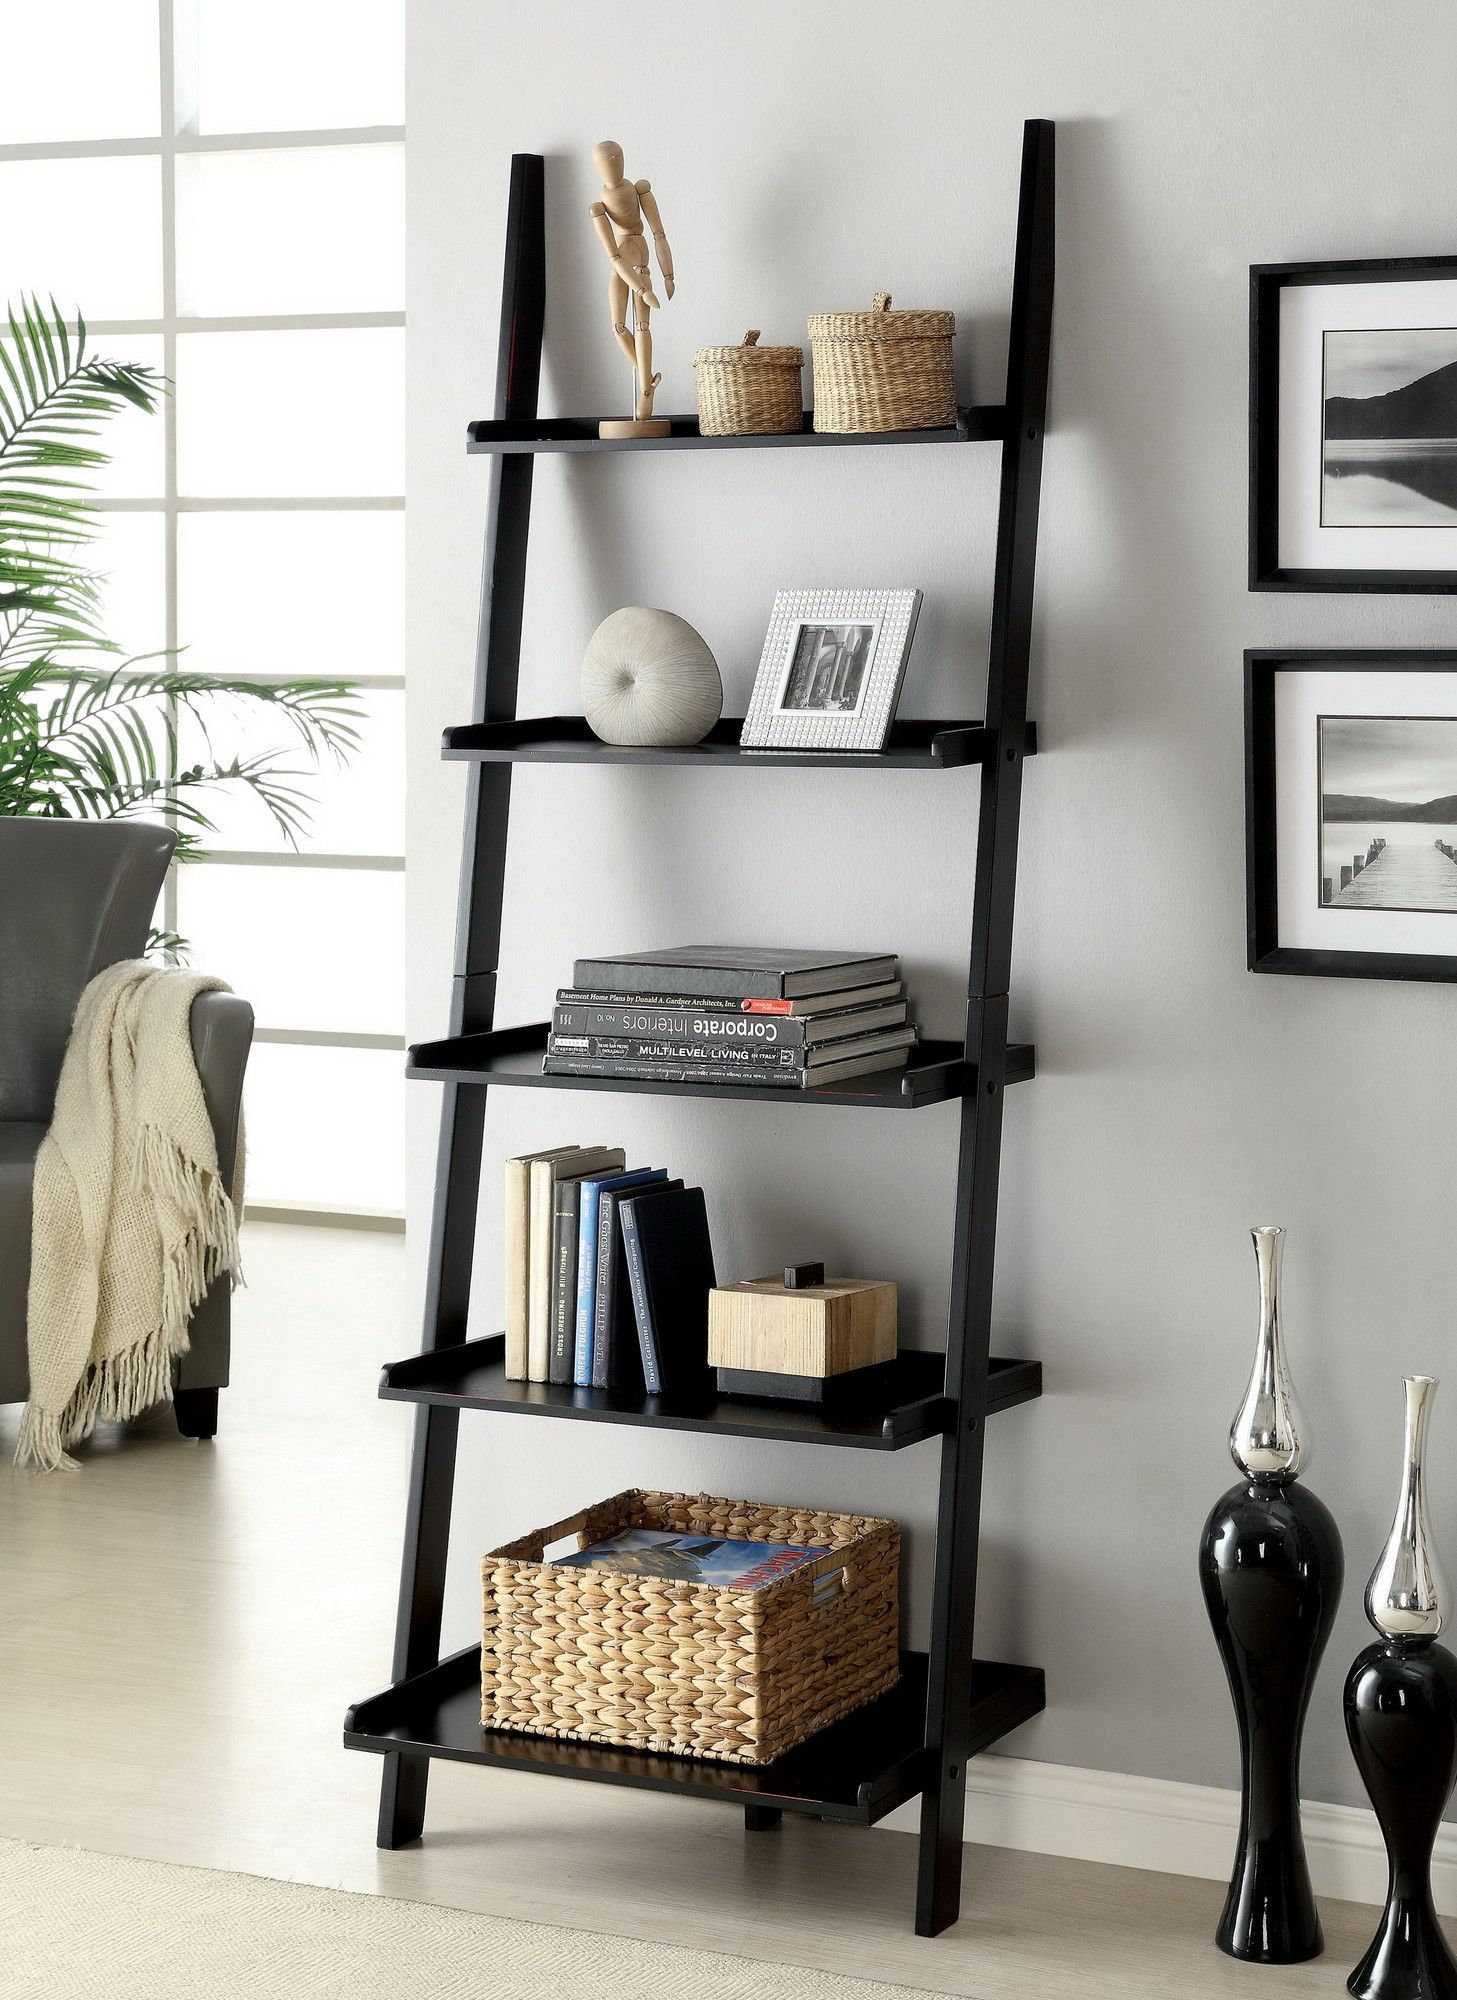 Features Wood Material Solid Veneer Product Type Leaning Style Traditional Frame Manufactured Shelving Included Yes